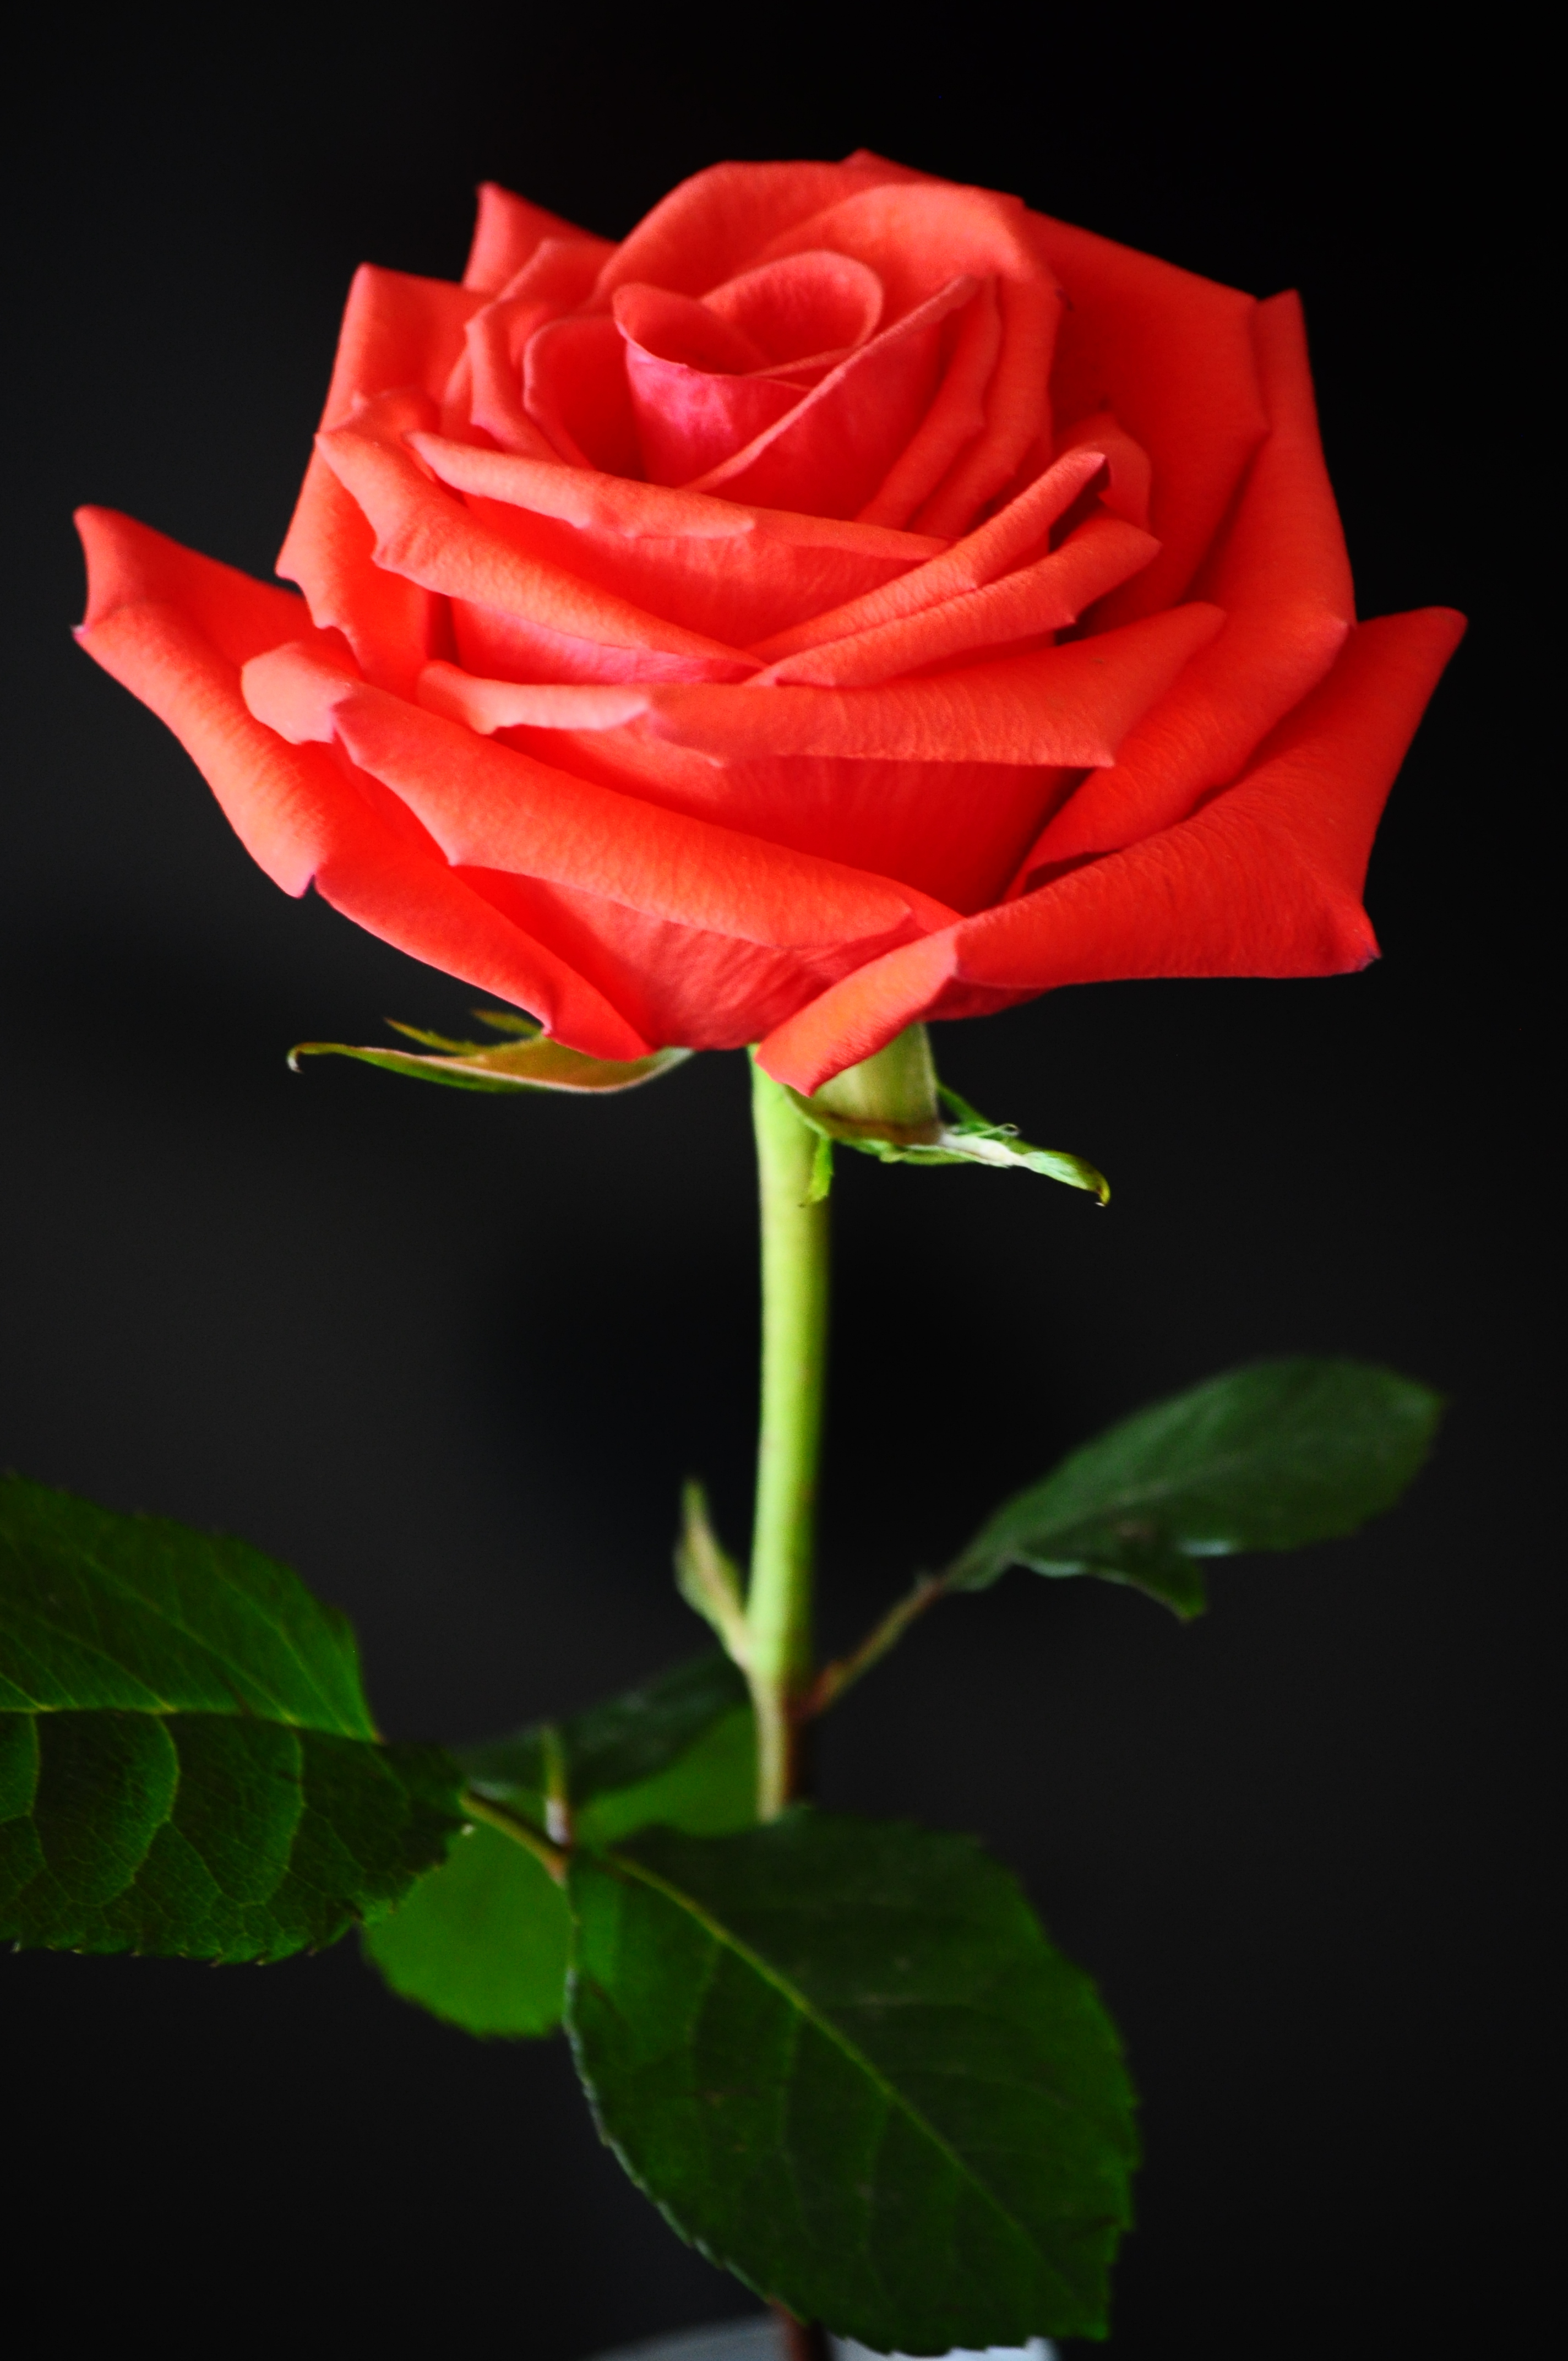 File:Red rose a...